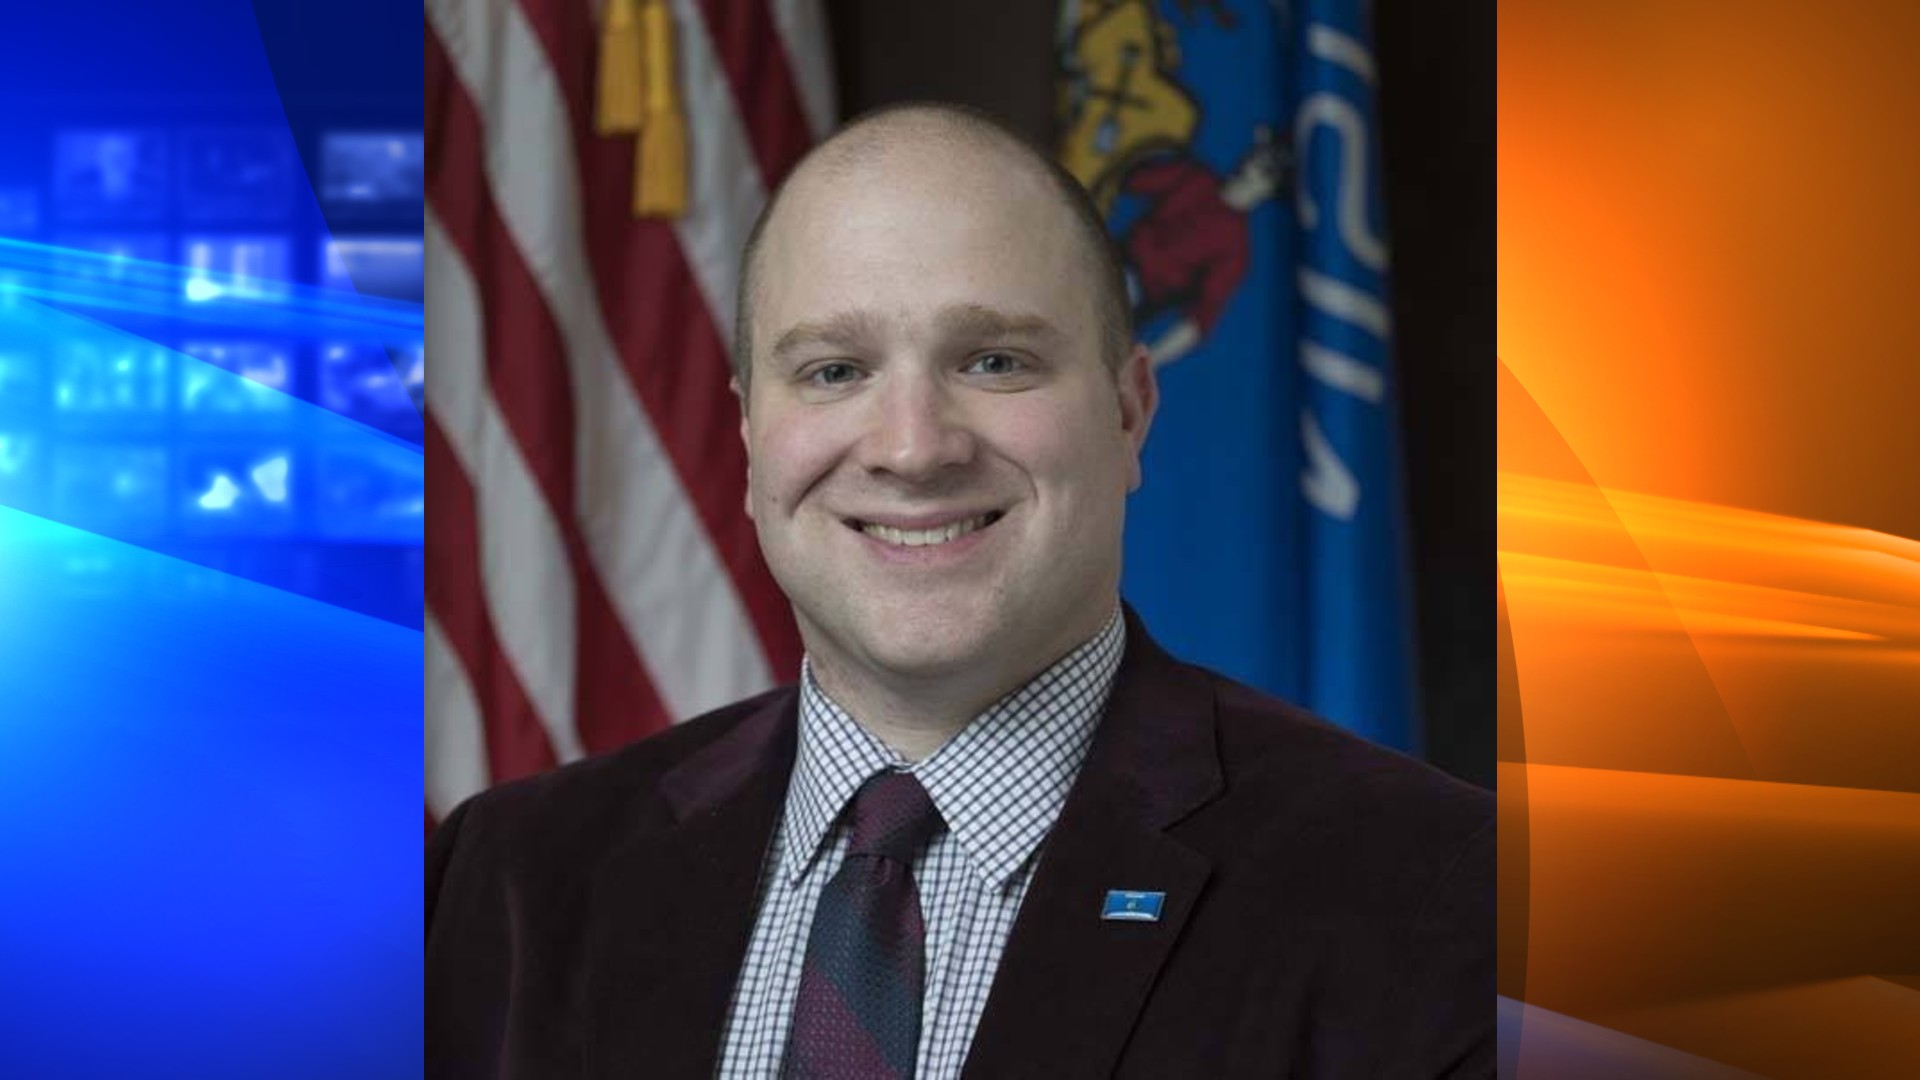 Wisconsin state Rep. Shae Sortwell is seen in an official photo.